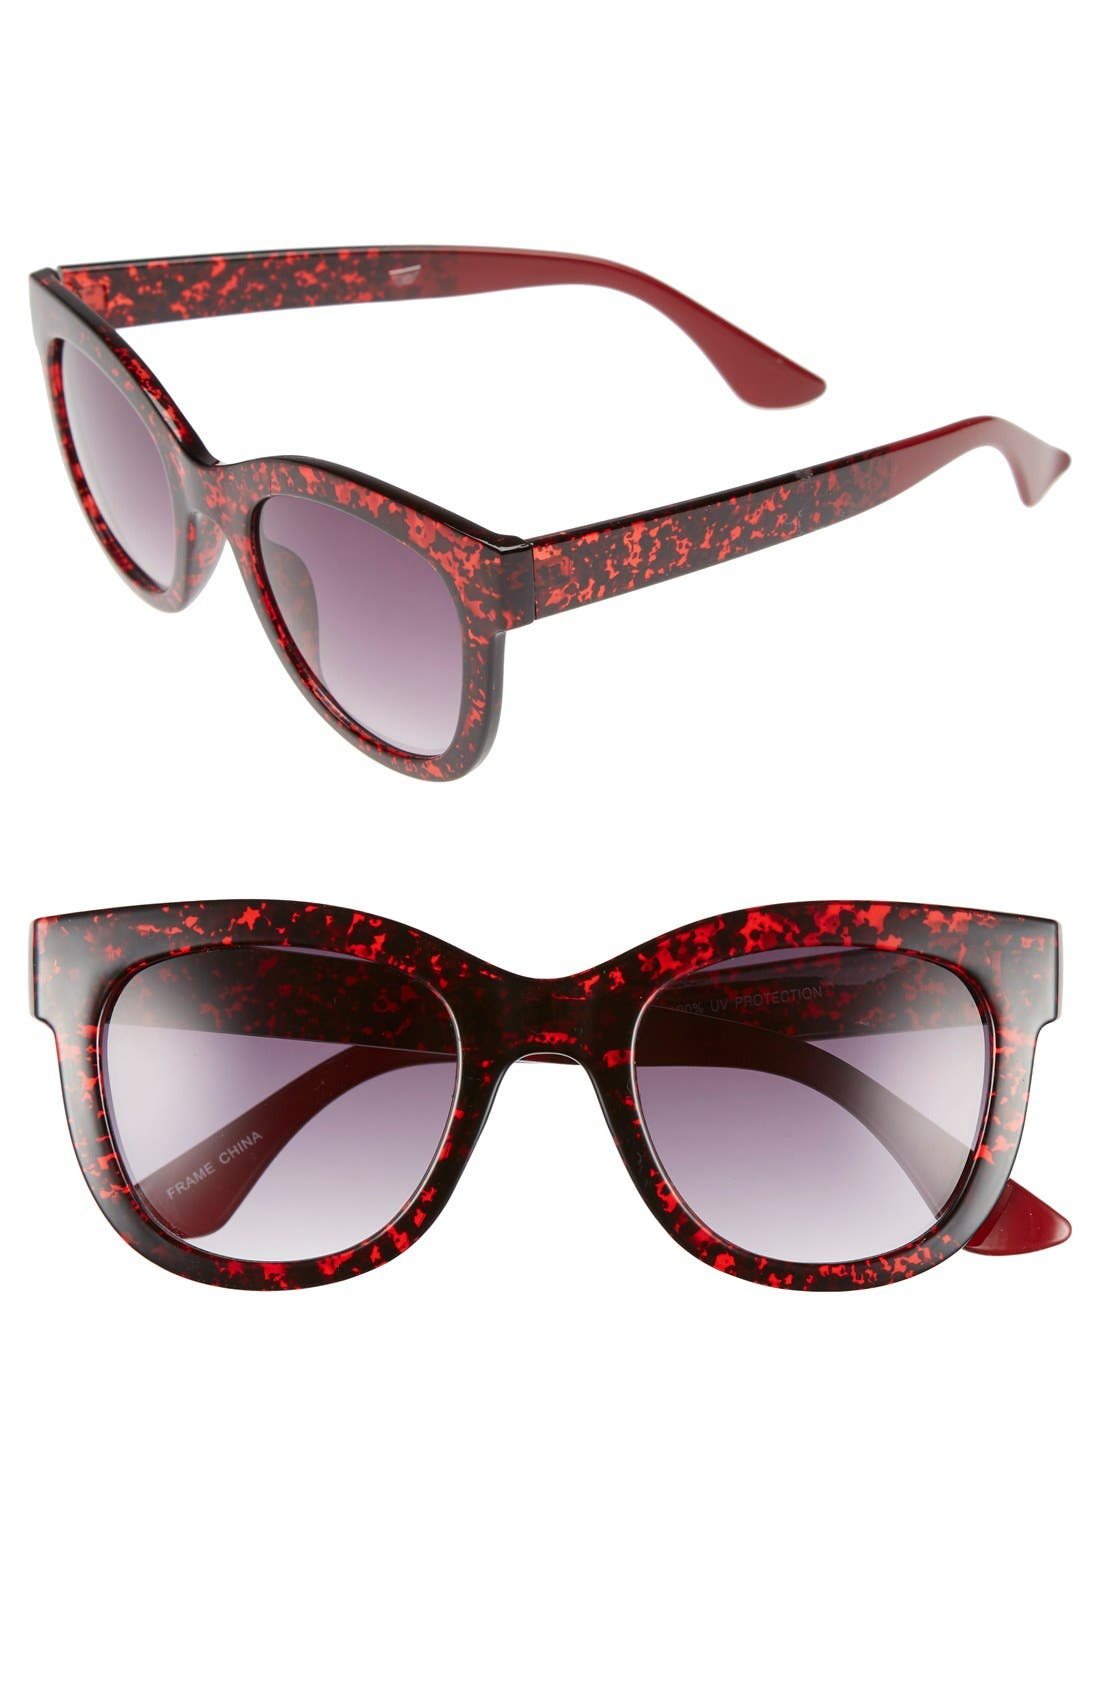 Main Image - Fantas Eyes 50mm Retro Sunglasses